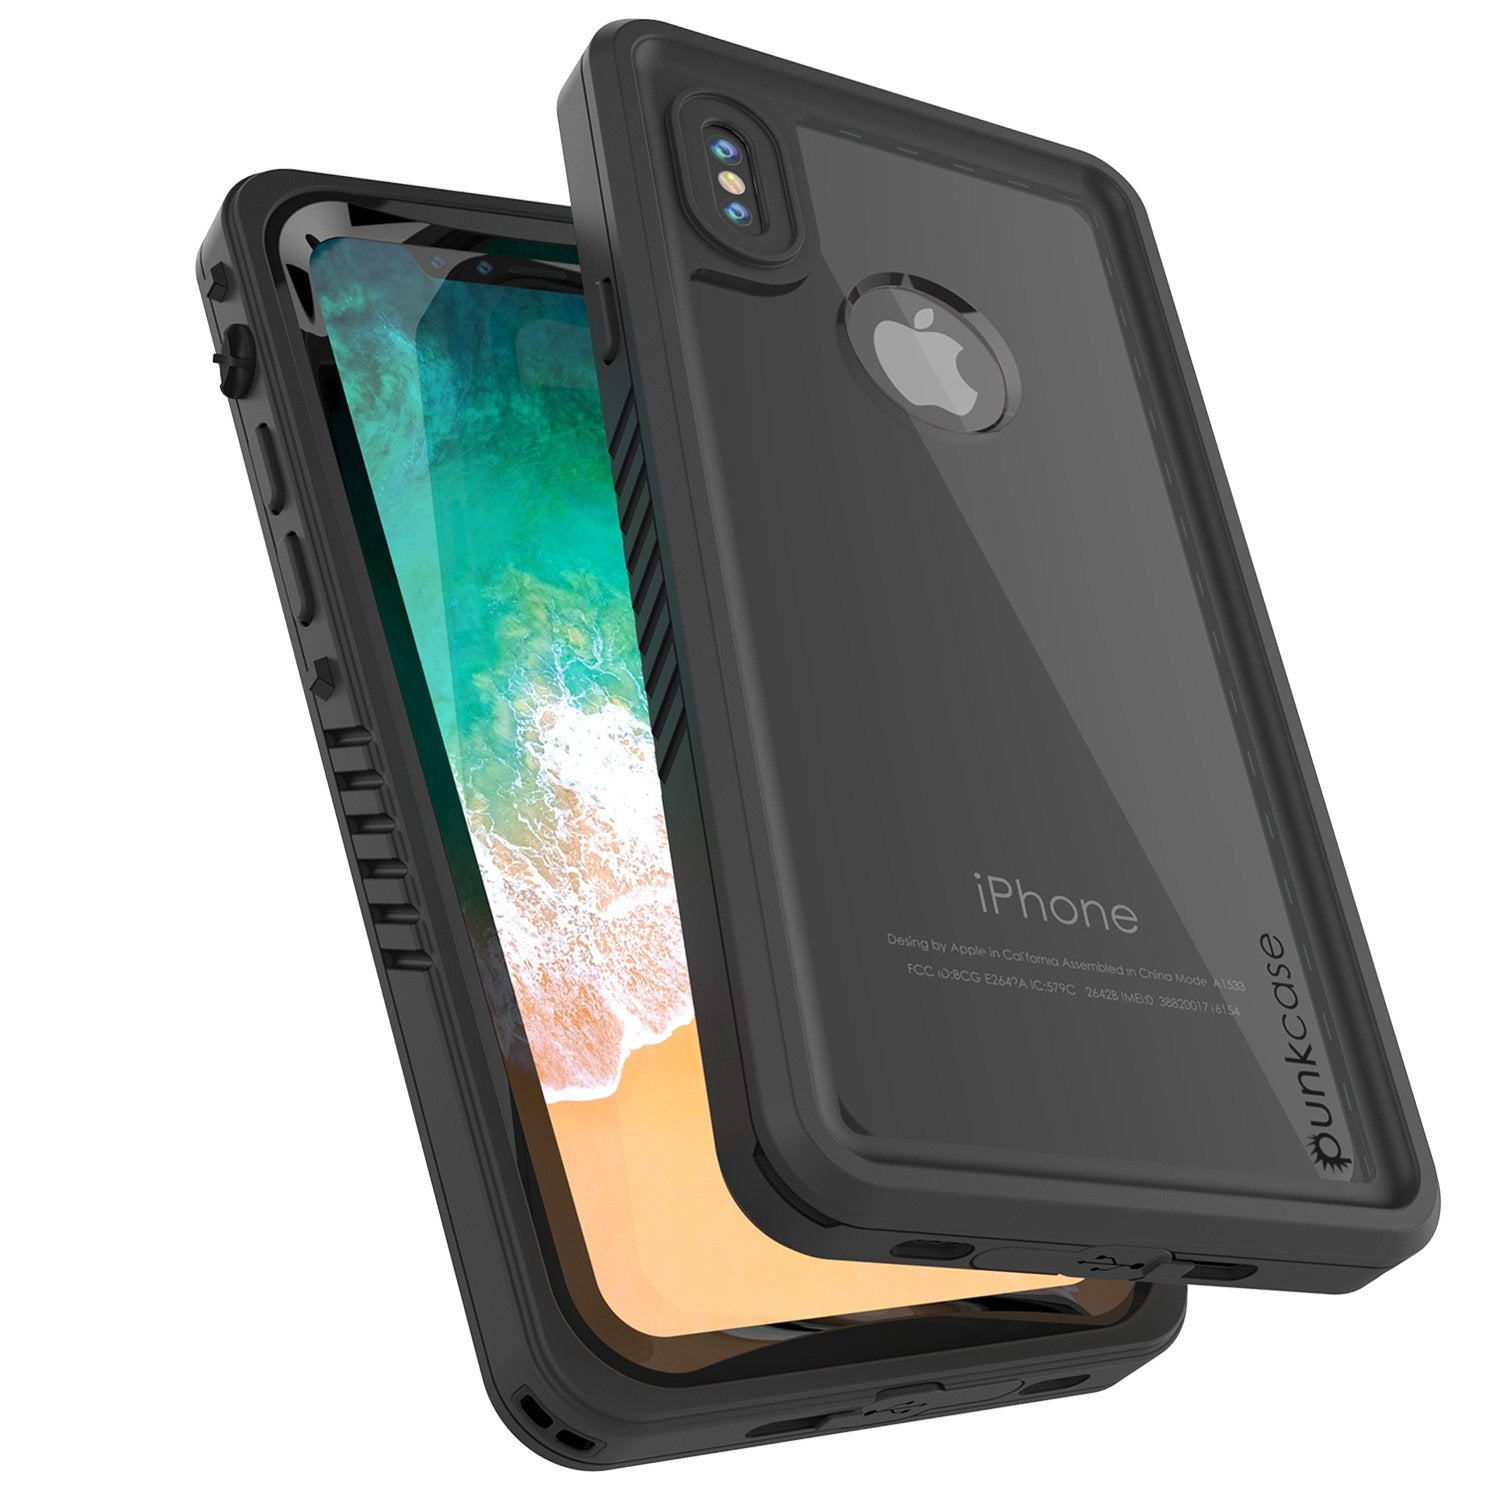 iPhone X Case, Punkcase [Extreme Series] [Slim Fit] [IP68 Certified] [Shockproof] [Snowproof] [Dirproof] Armor Cover W/ Built In Screen Protector for Apple iPhone 10 [BLACK]